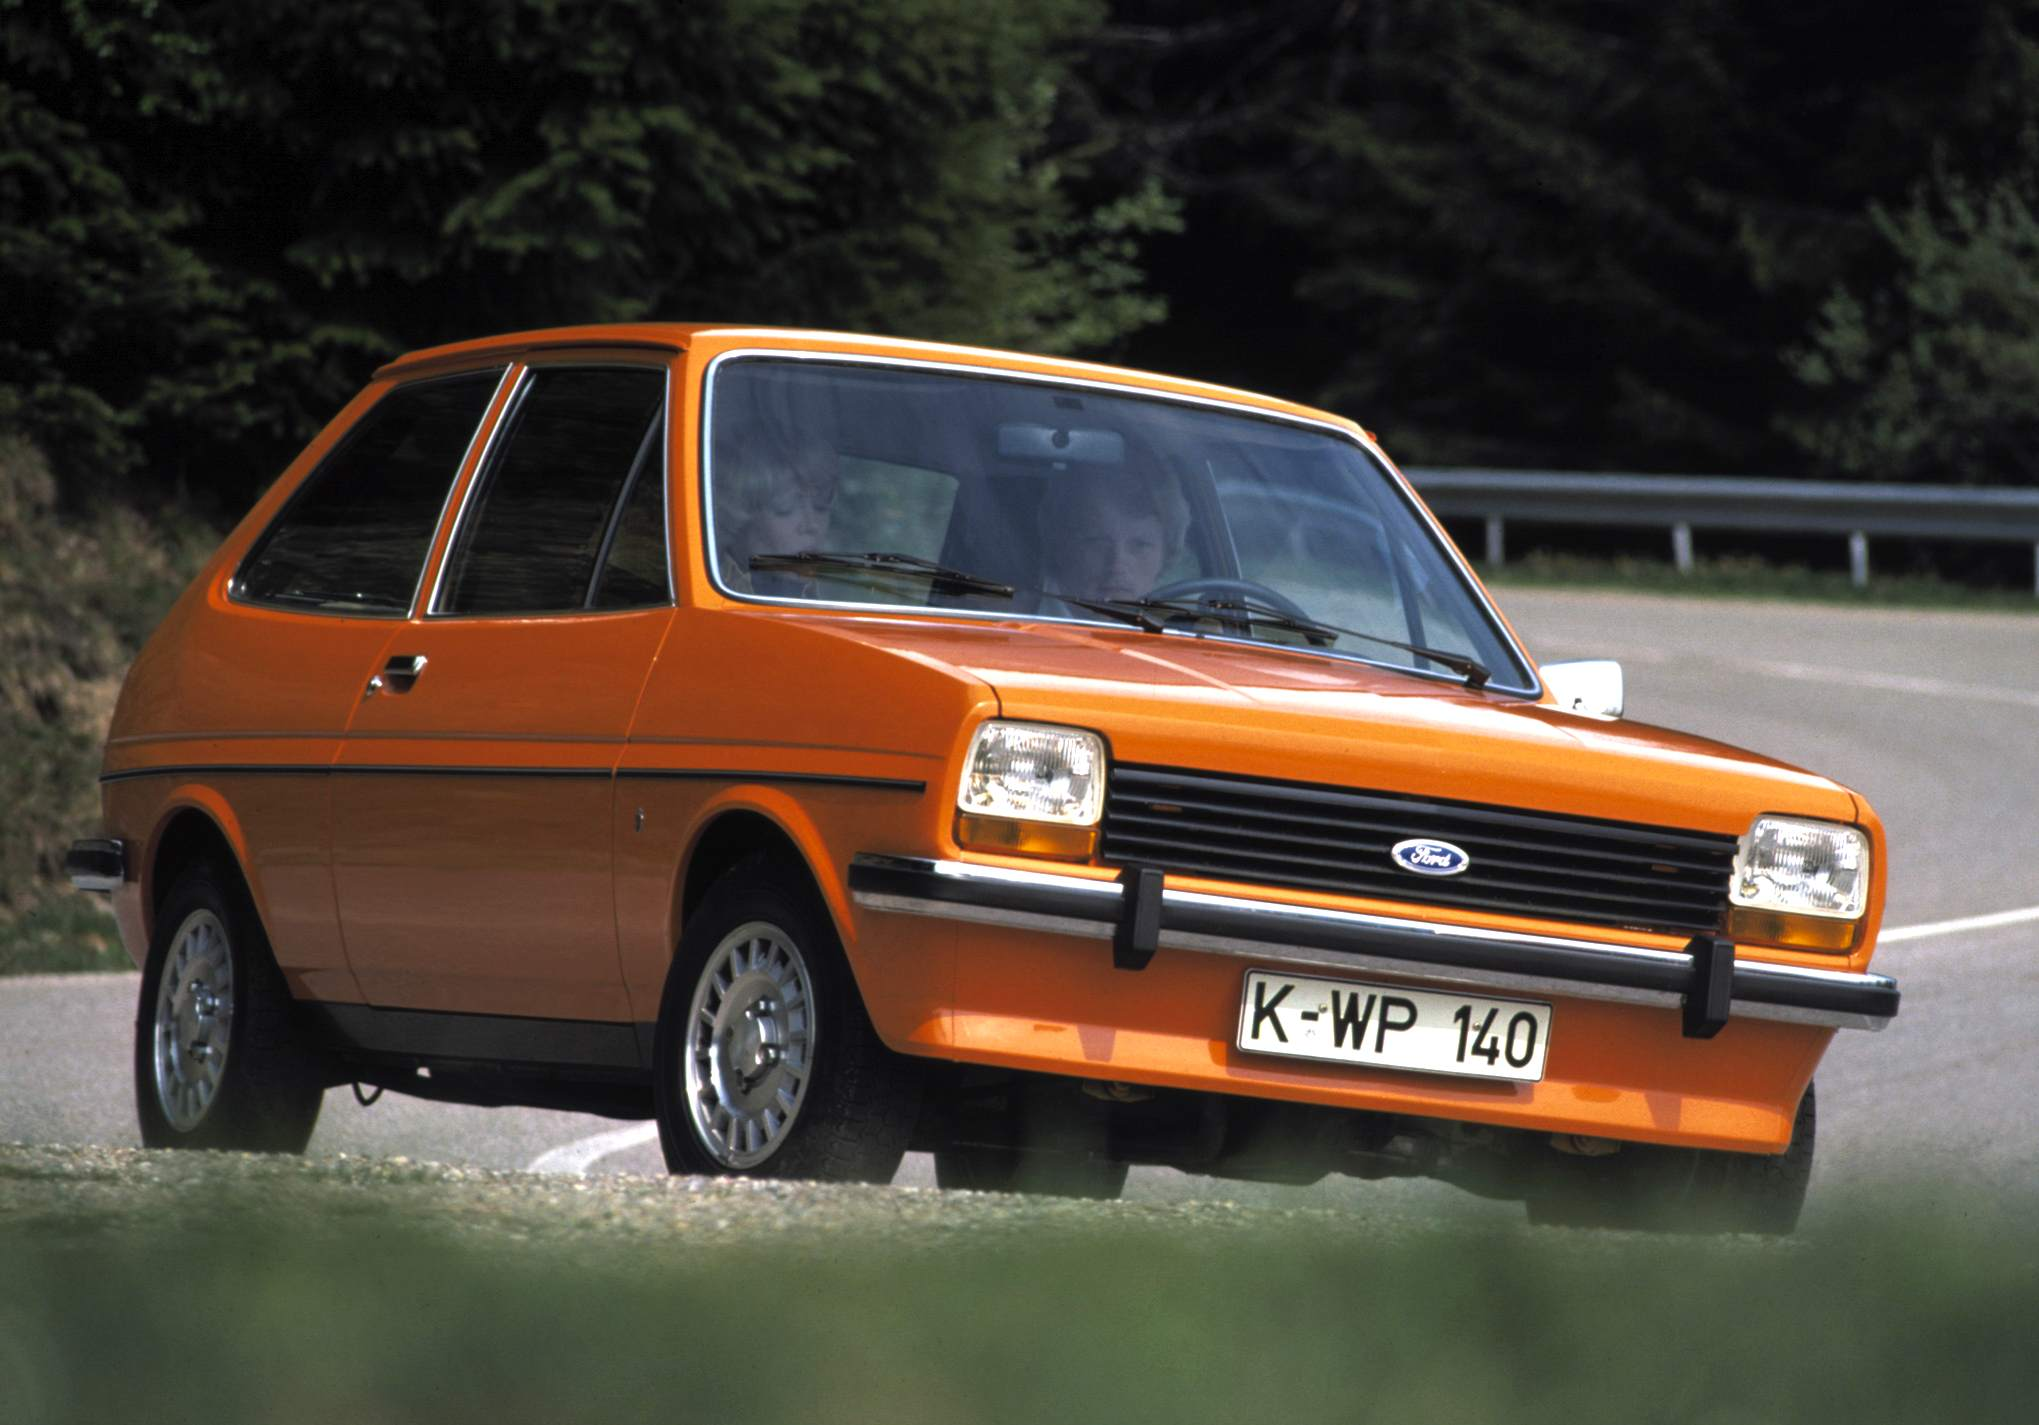 Ford Fiesta 1980 Review Amazing Pictures And Images Look At The Car